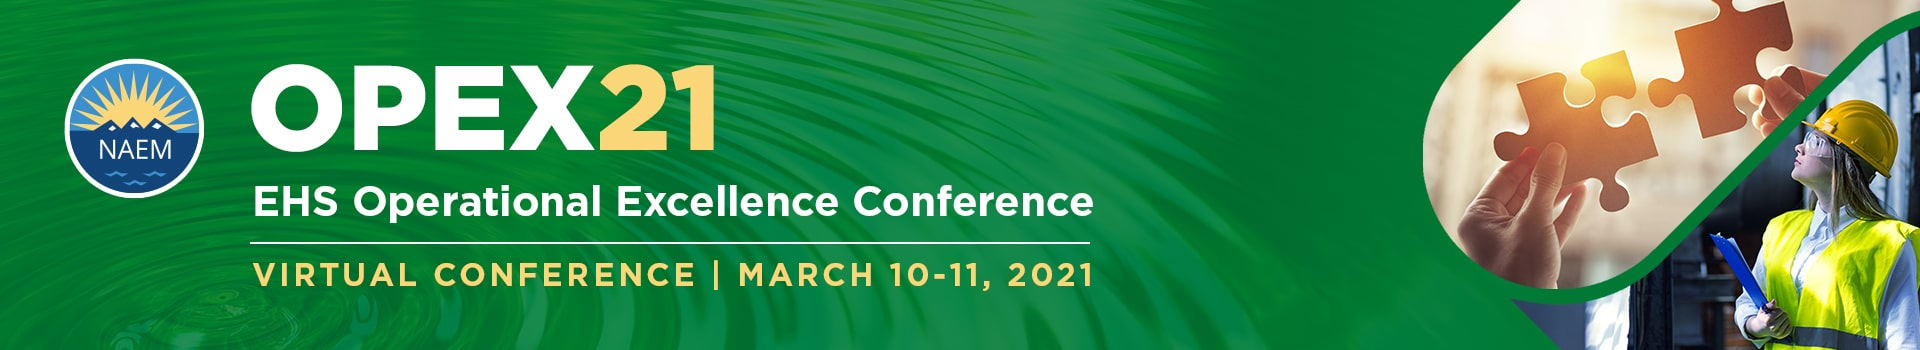 OPEX21 | EHS Operational Excellence Conference - March 10 - March 11, 2021 - Virtual Event, Join From Anywhere!